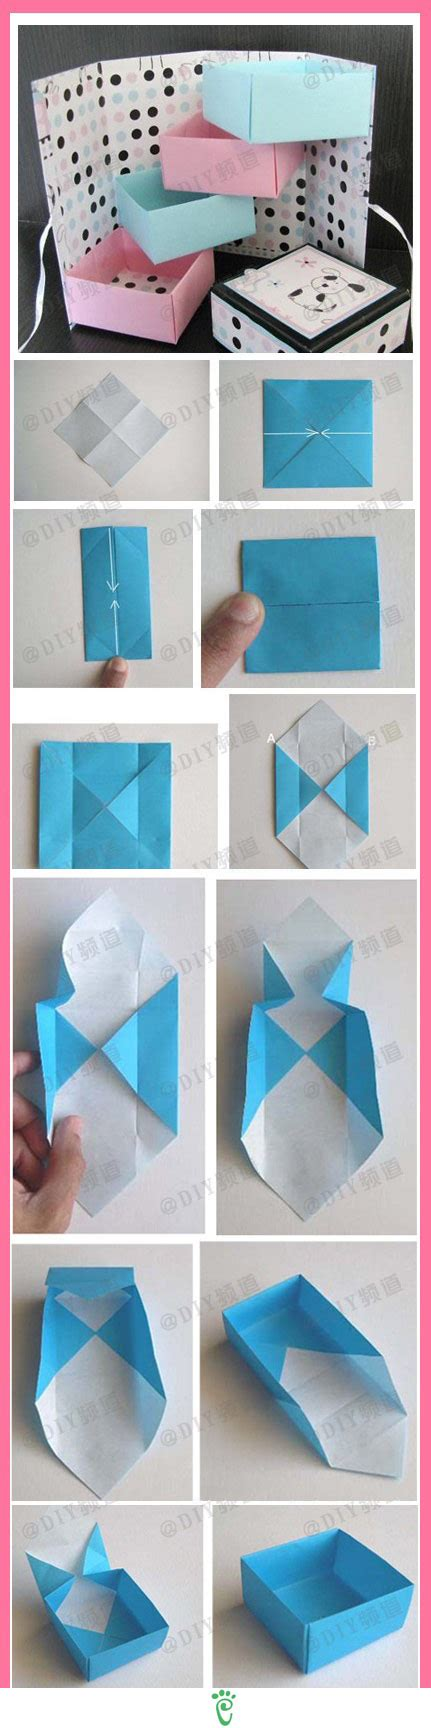 paper box crafts diy paper box pictures photos and images for